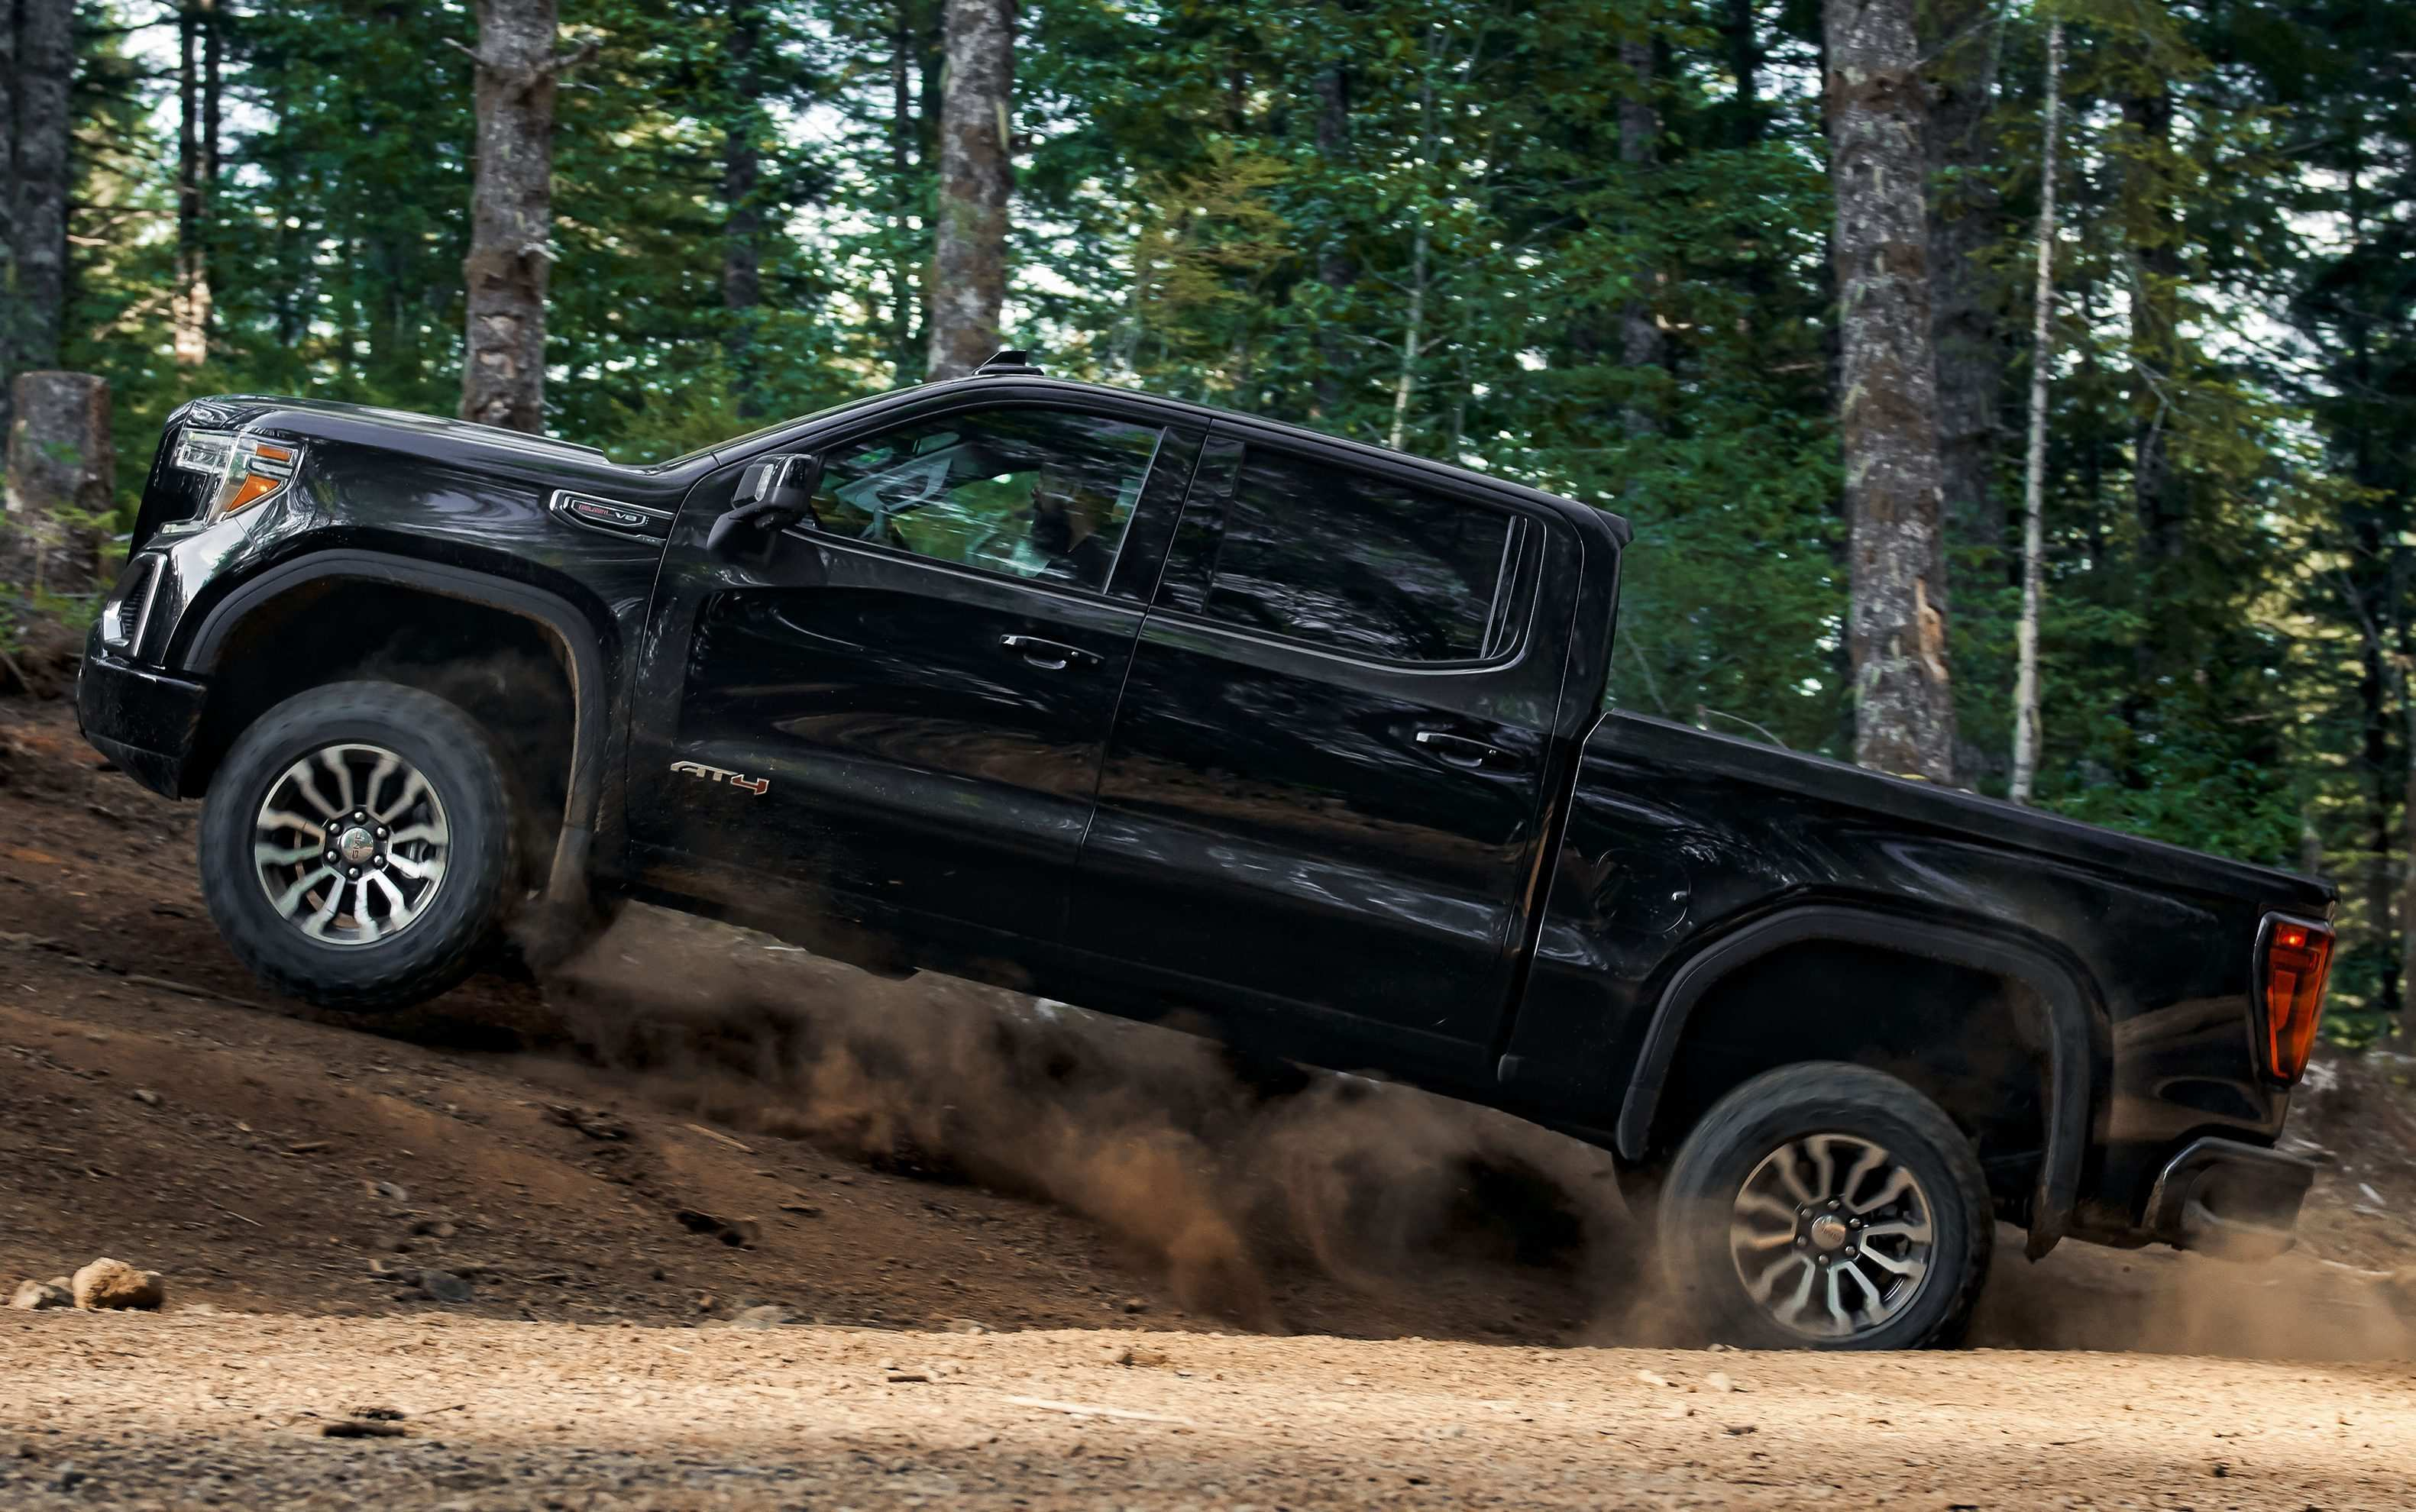 38 The Best 2019 Bmw Sierra At4 Configurations